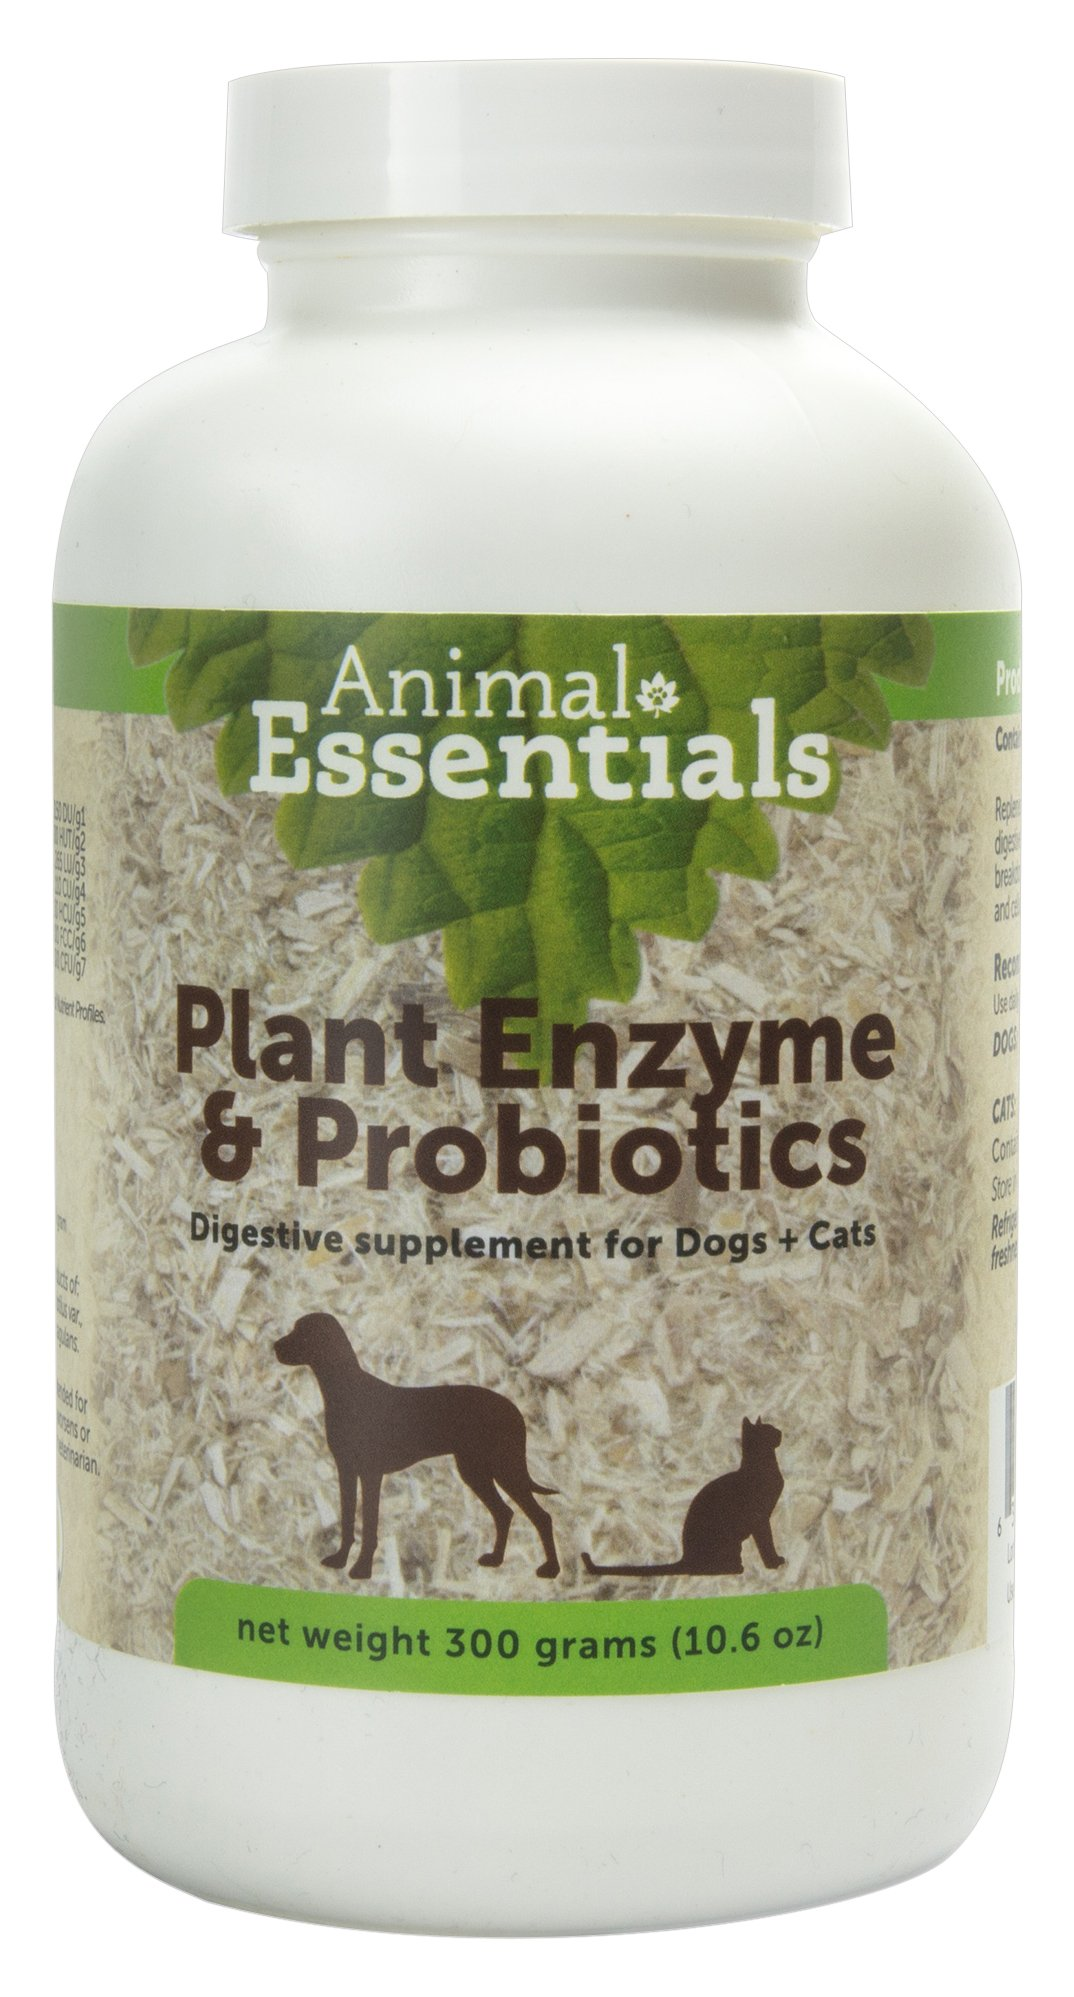 Animal Essentials Plant Enzyme & Probiotics Supplement for Dogs & Cats, 10.6 oz by Animal Essentials